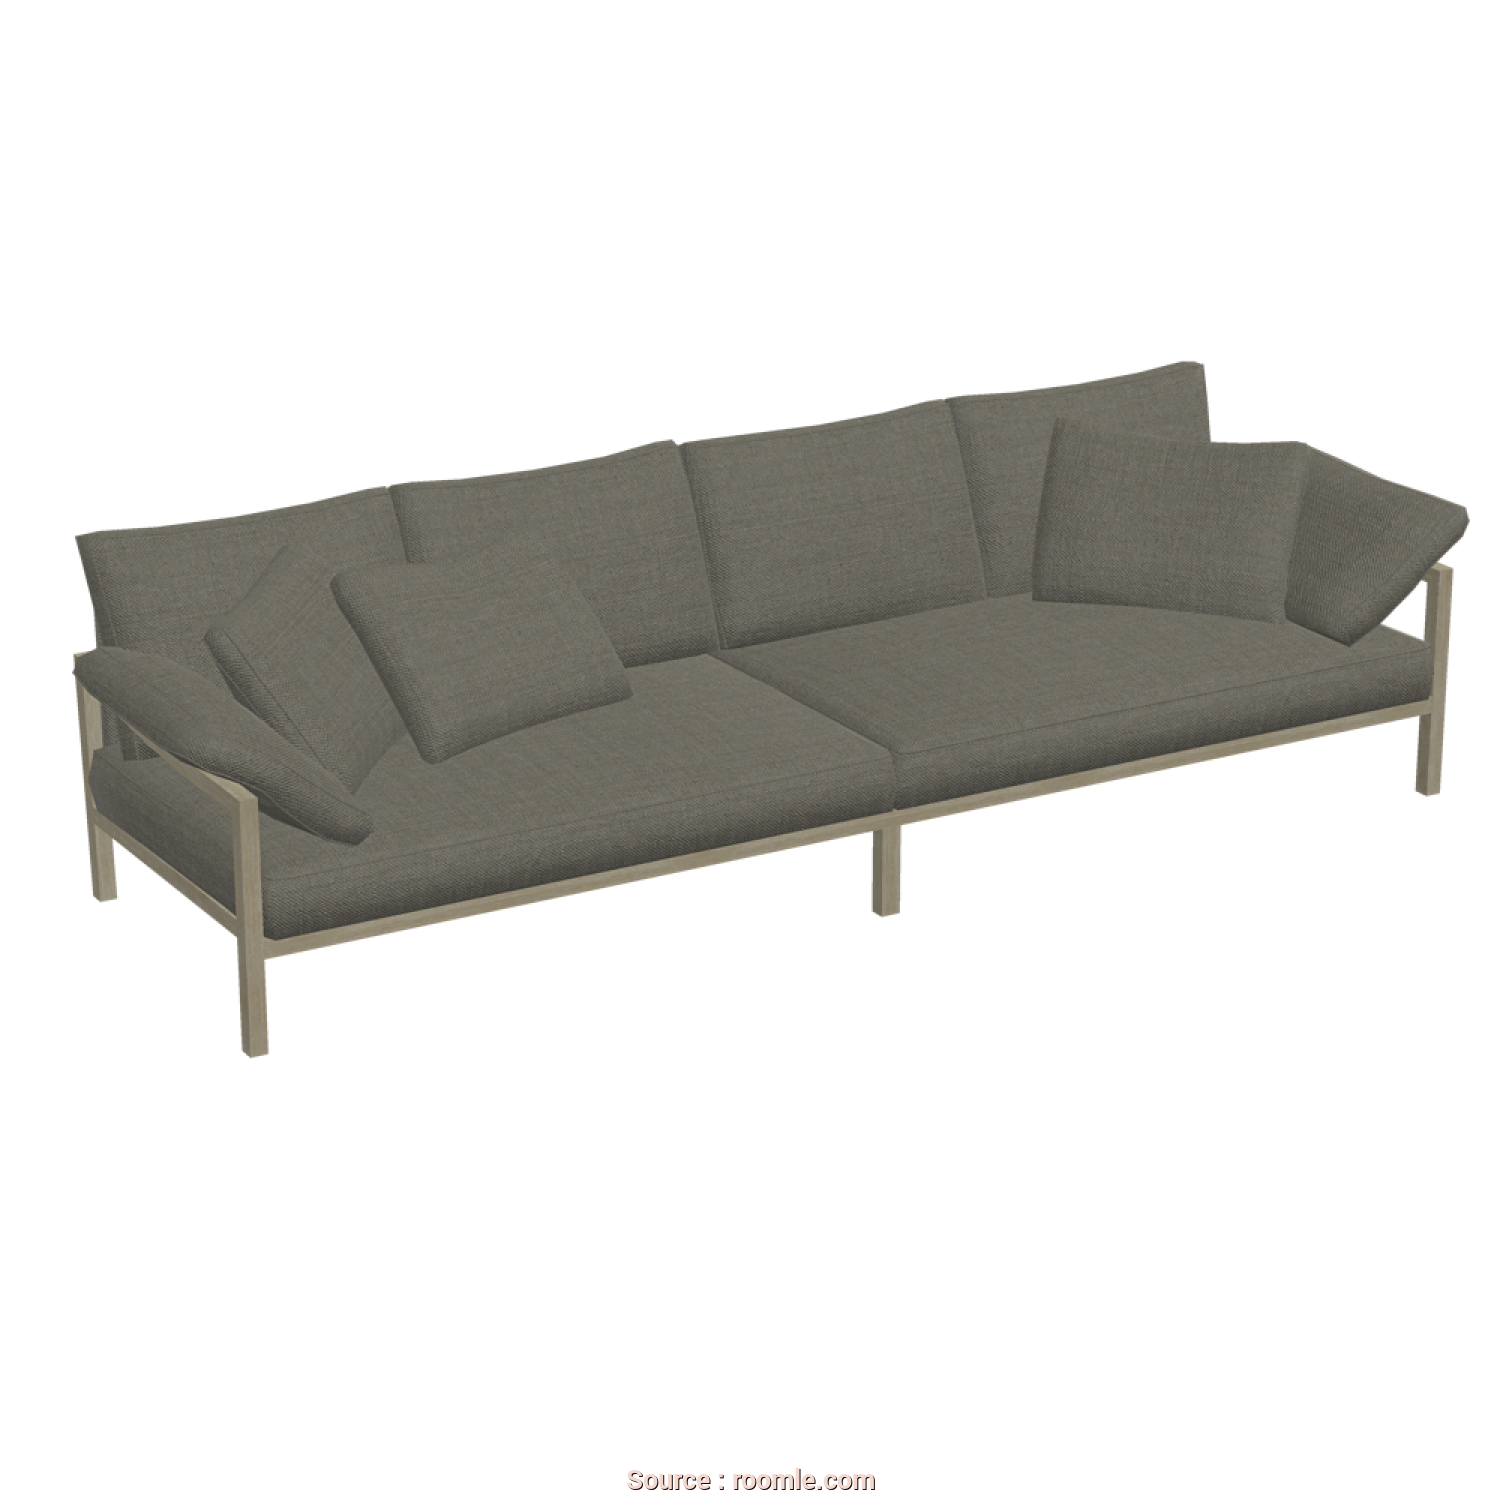 C Divani Flour, Migliore Free, Out Of Chromatic Sofa From Living Divani In, VR, AR